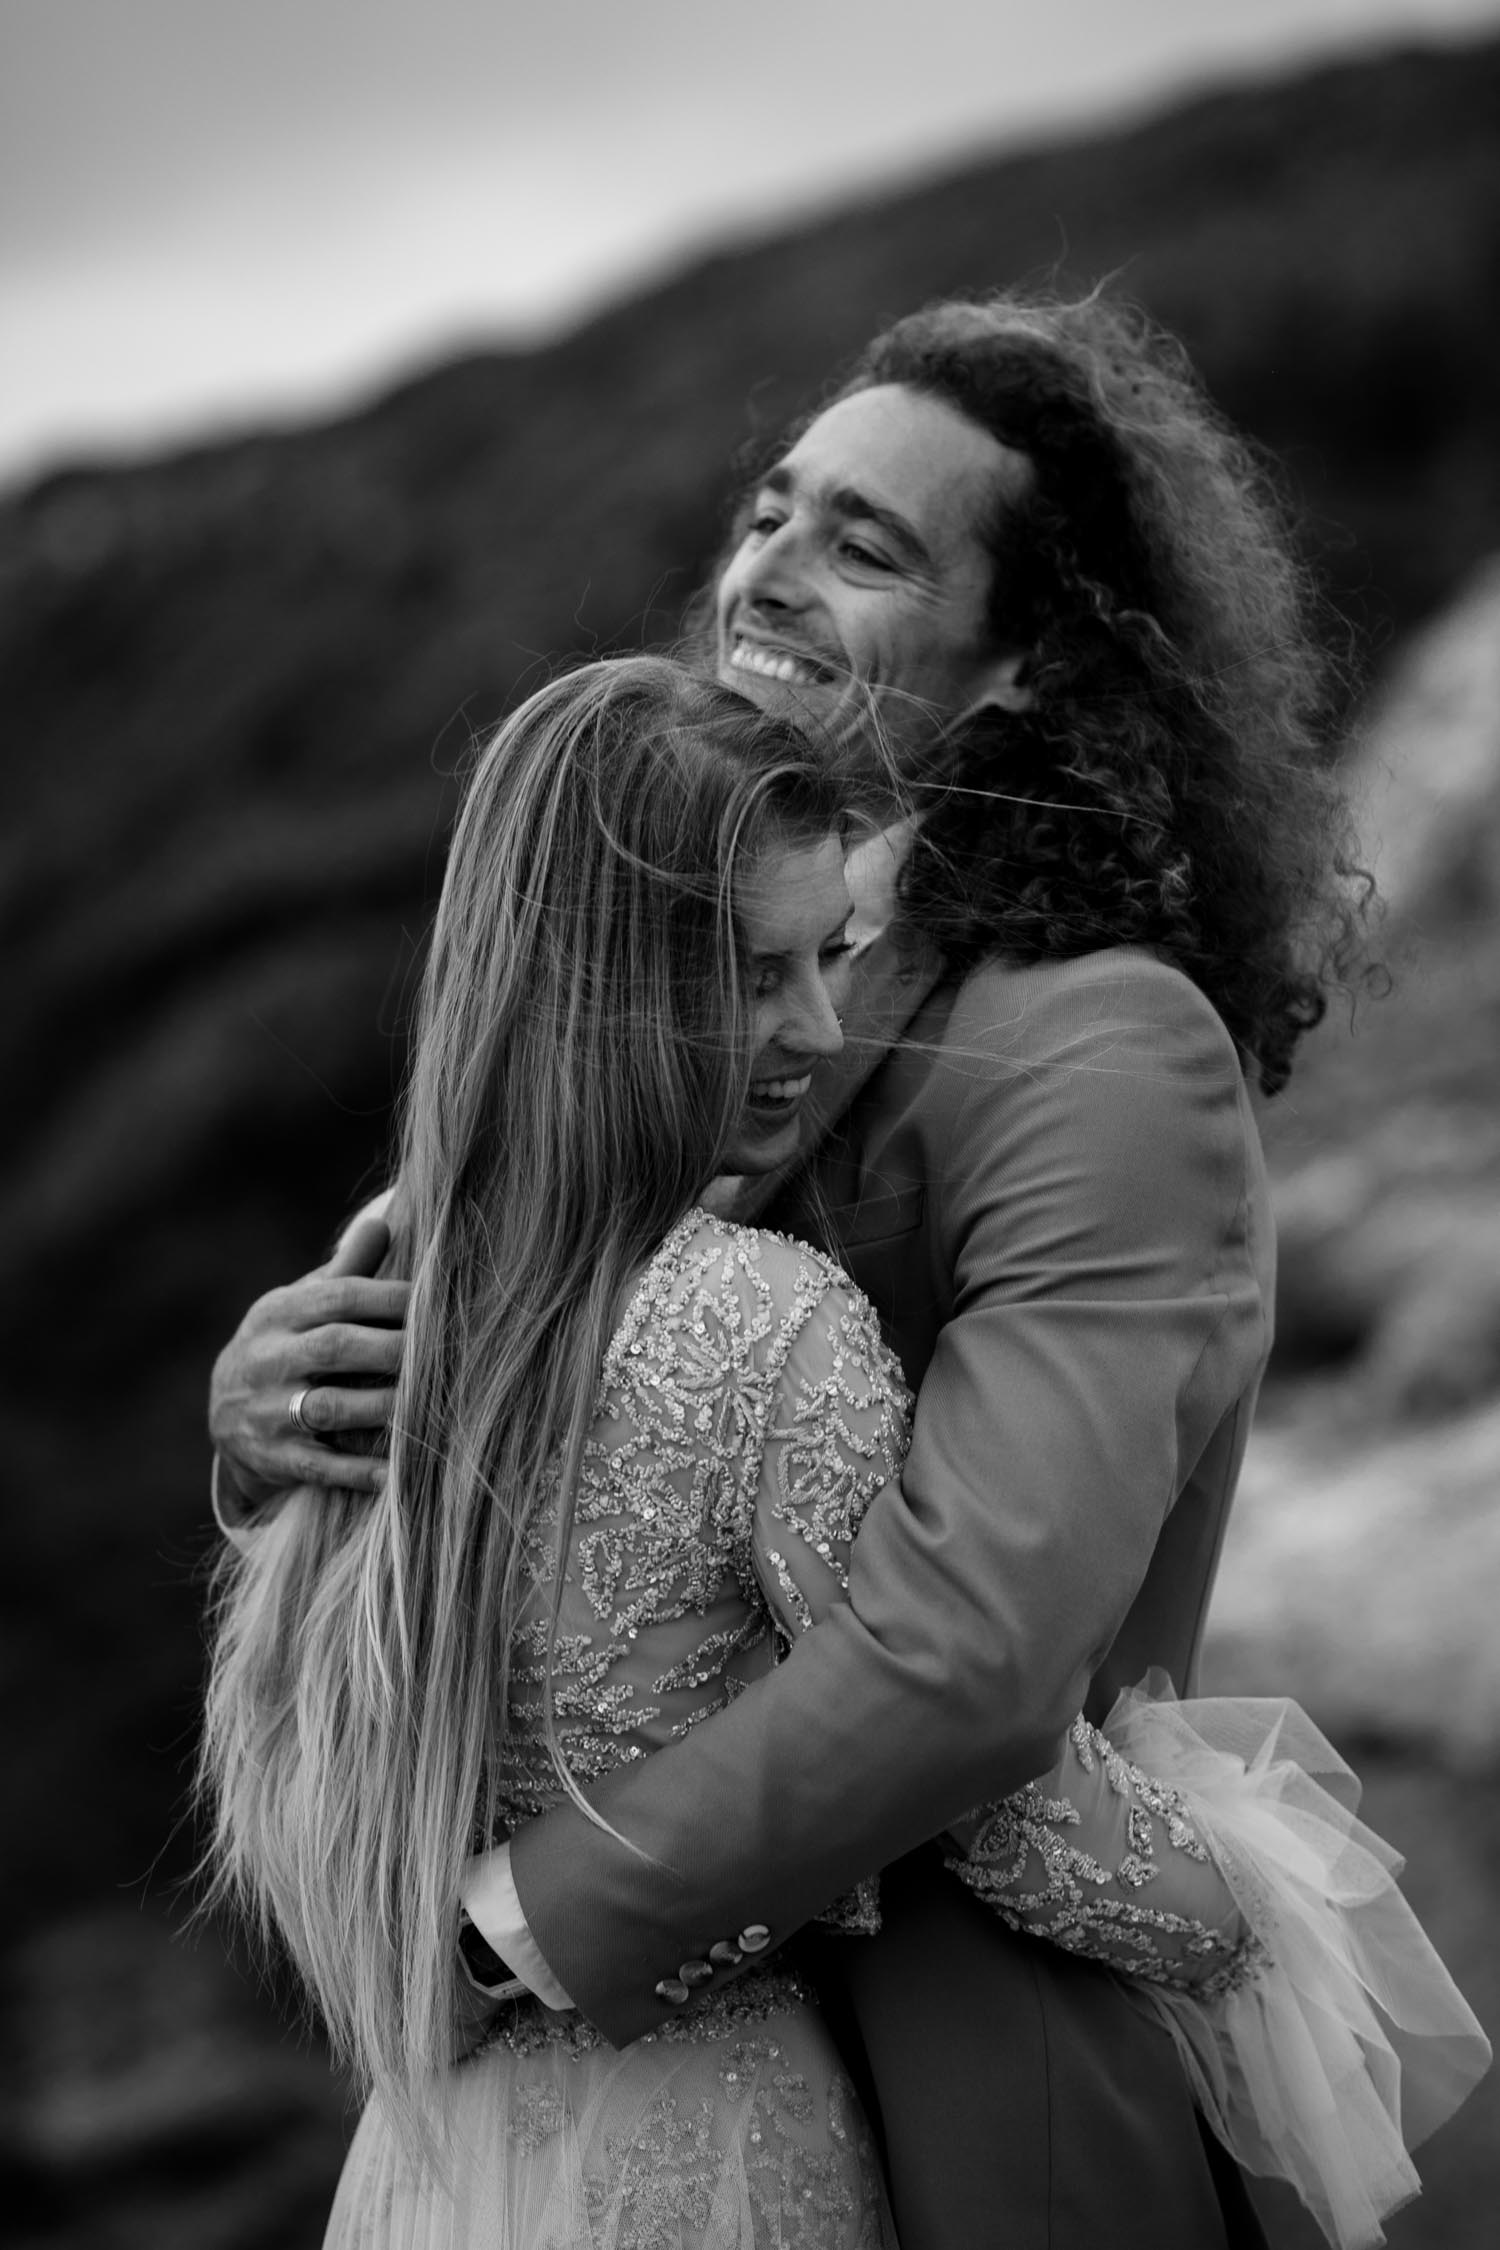 Wild and windy moody photo portrait session of bride and groom at Cannon beach